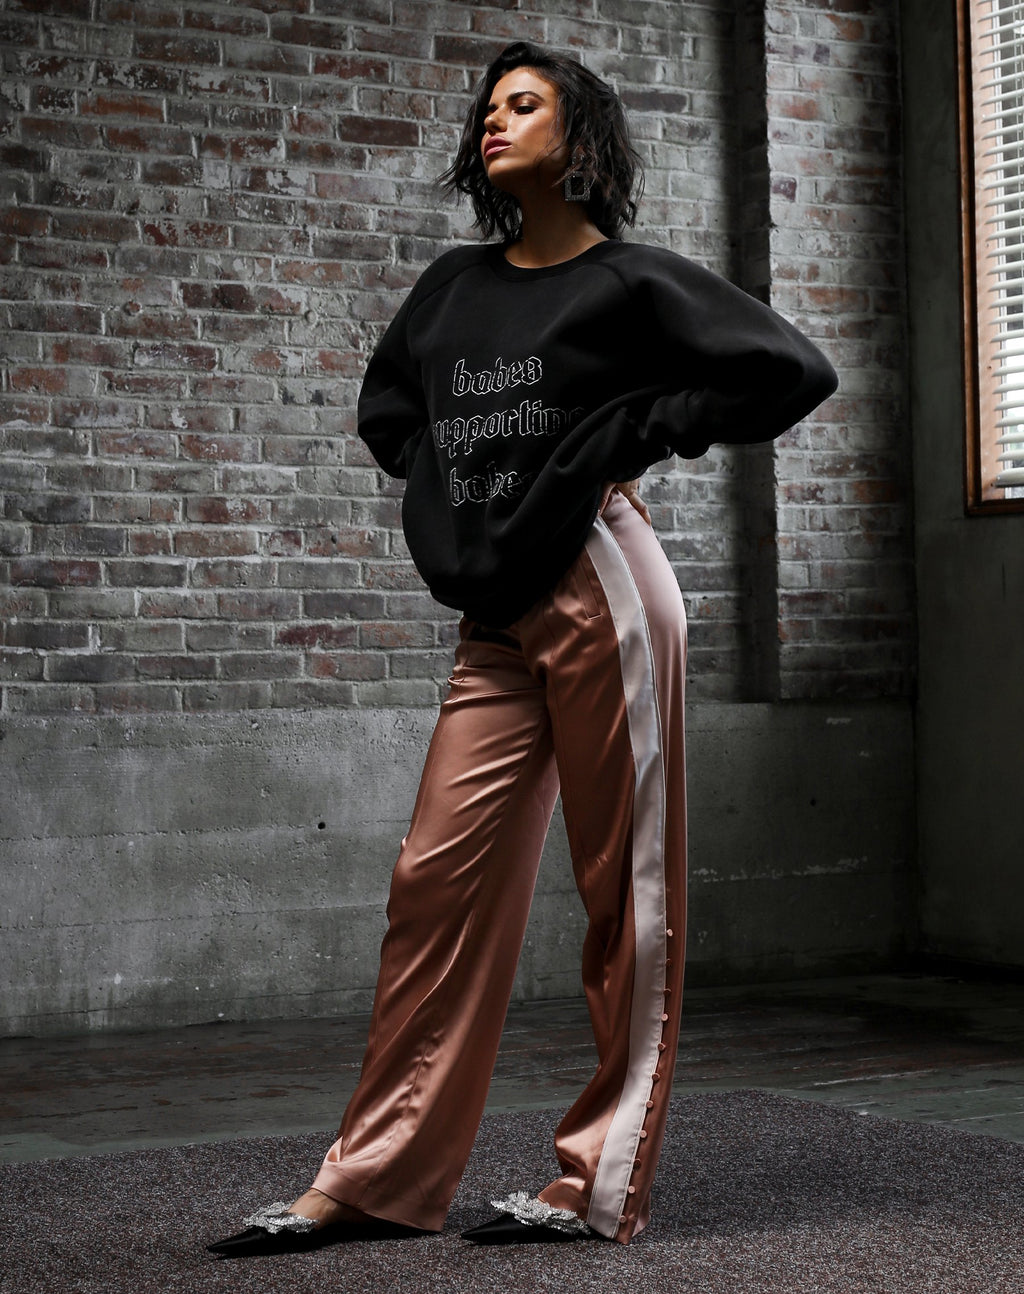 """BABES SUPPORTING BABES"" Big Sister Crew Neck Sweatshirt 